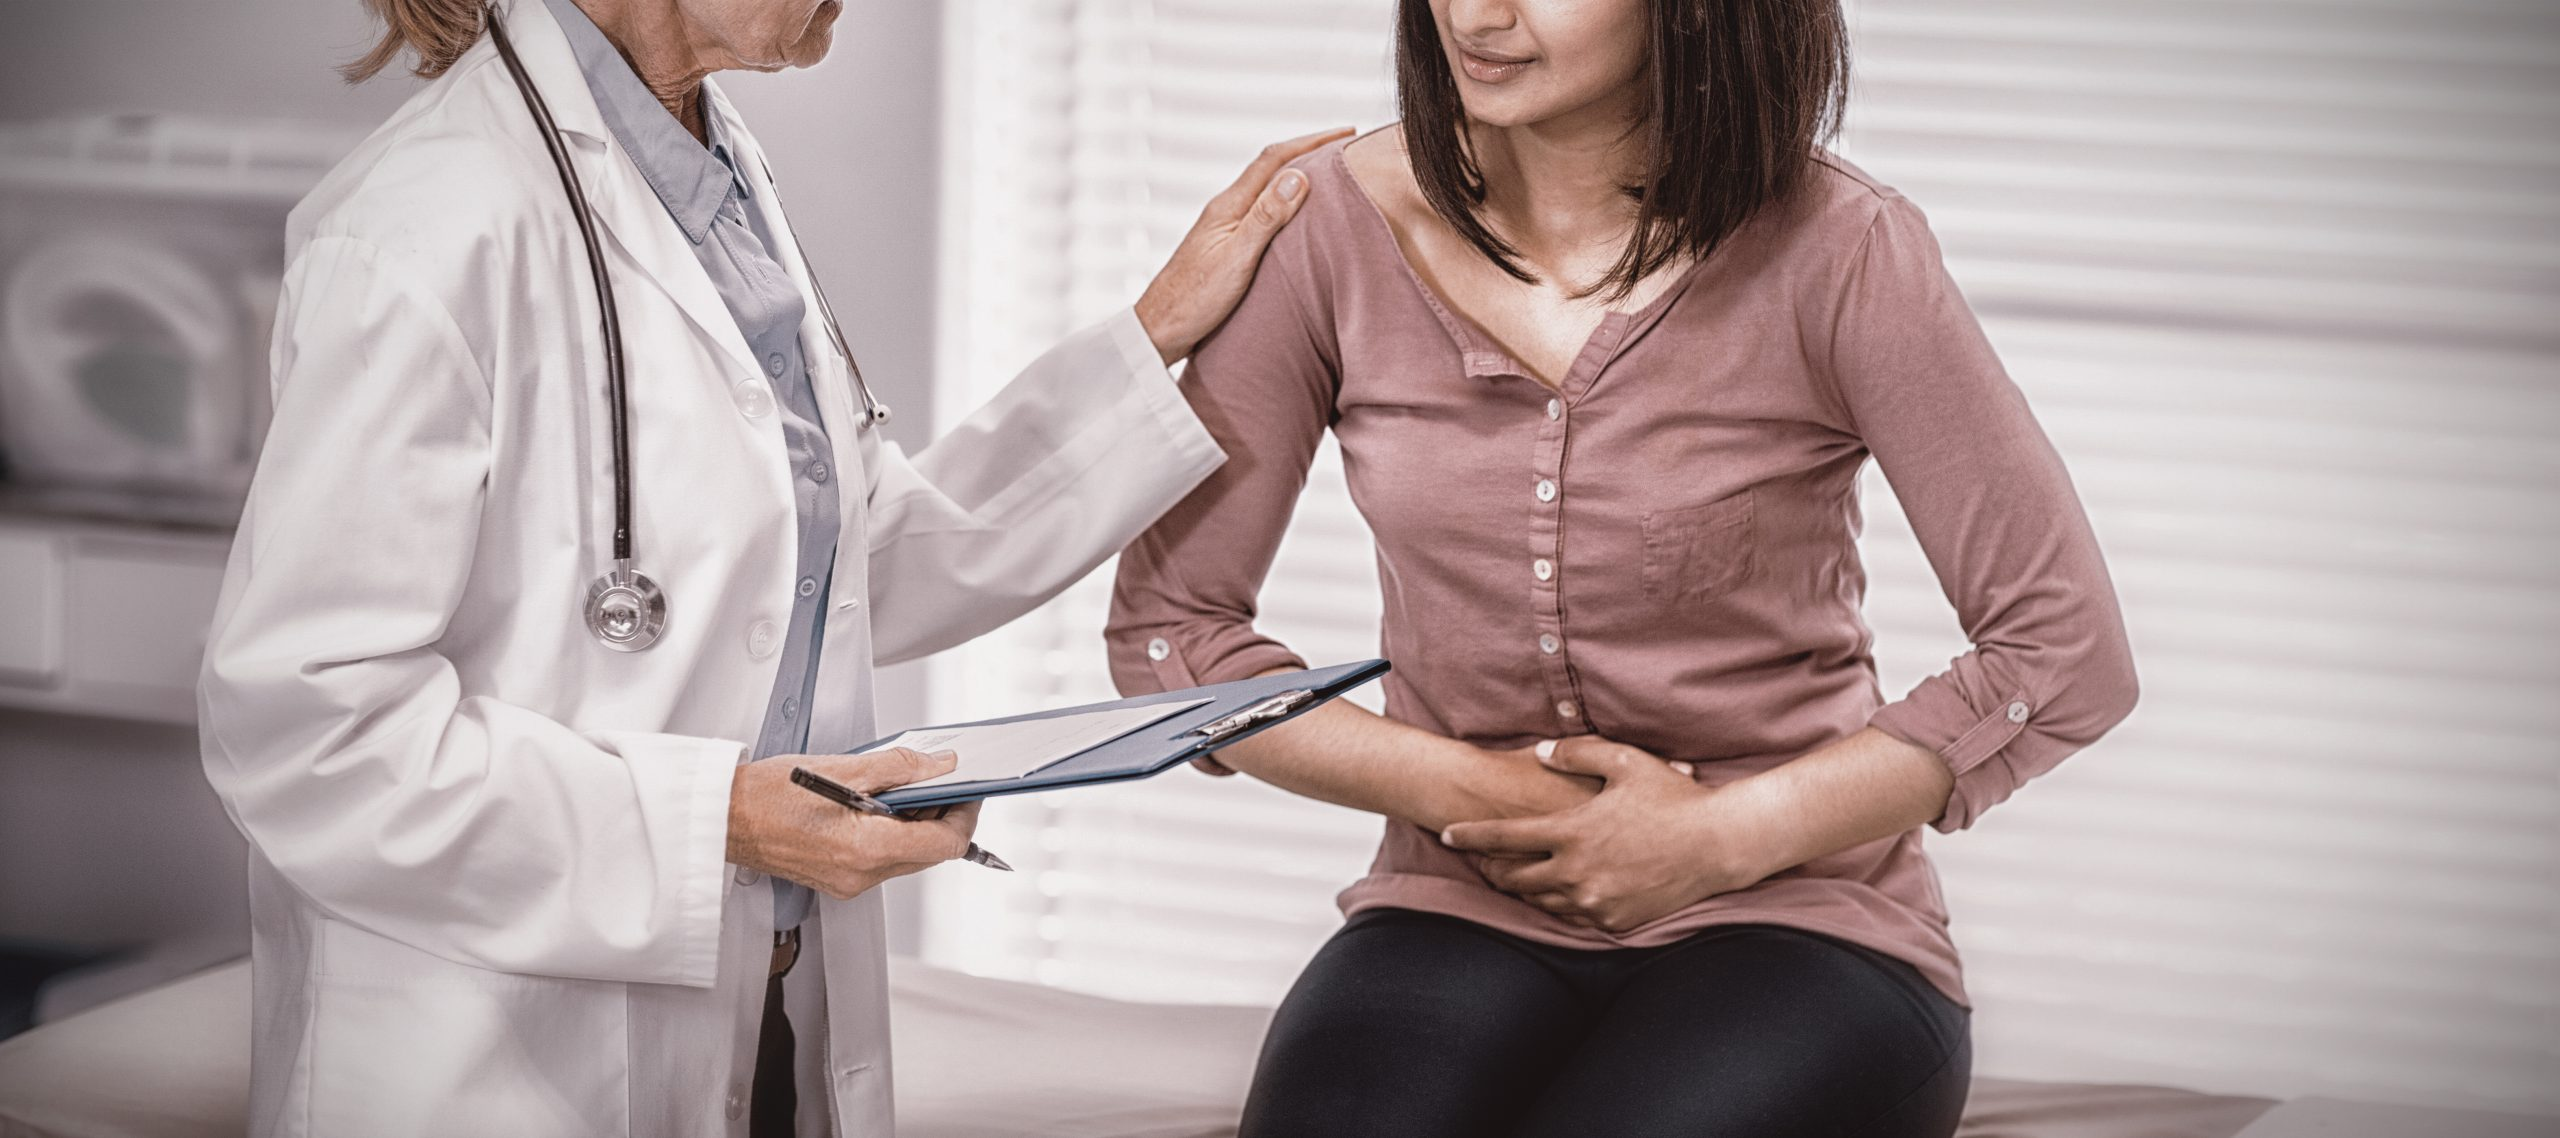 5 Signs You Need to See a GI Doctor